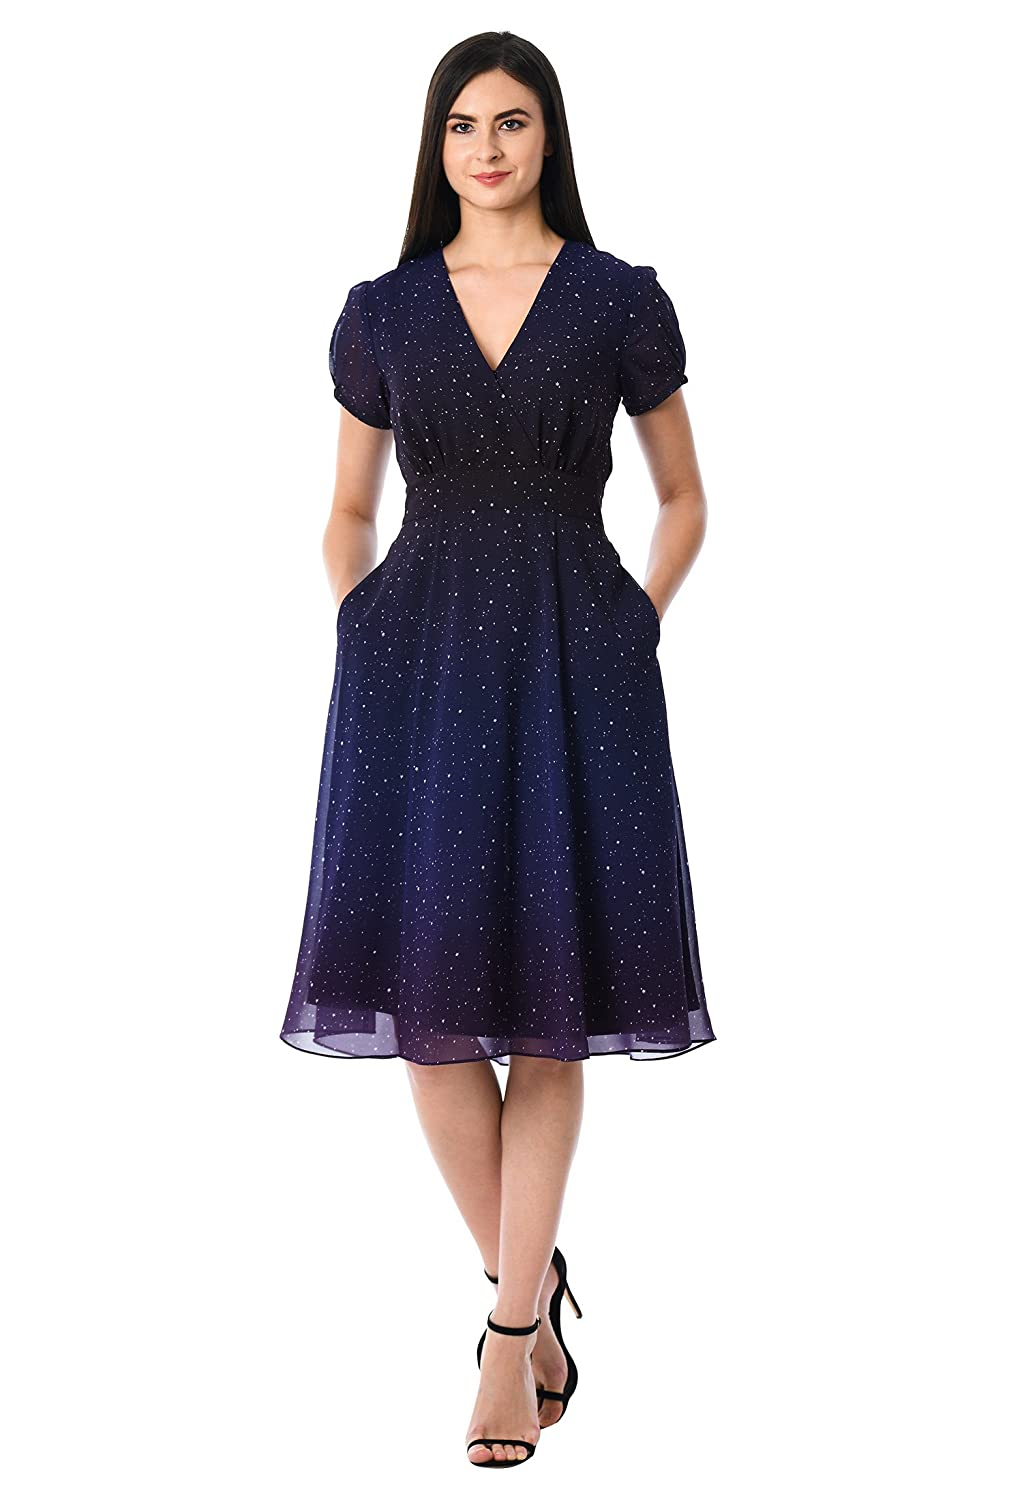 1950s Swing Dresses | 50s Swing Dress eShakti Womens Ombre Star Print Georgette Surplice Dress $74.95 AT vintagedancer.com